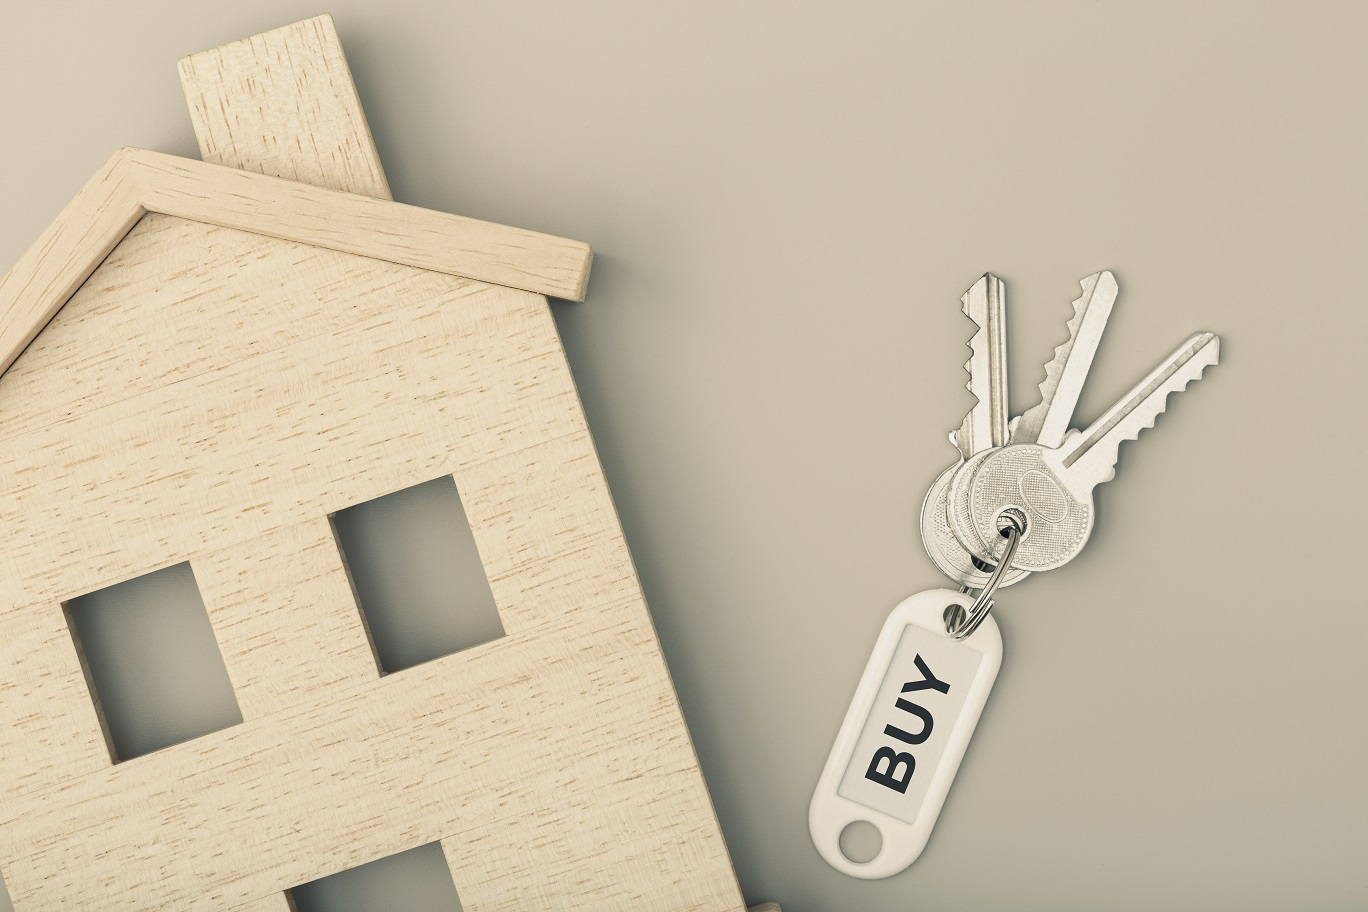 Buying a house concept. Real estate market. House icon with keys. Copy space. Top view